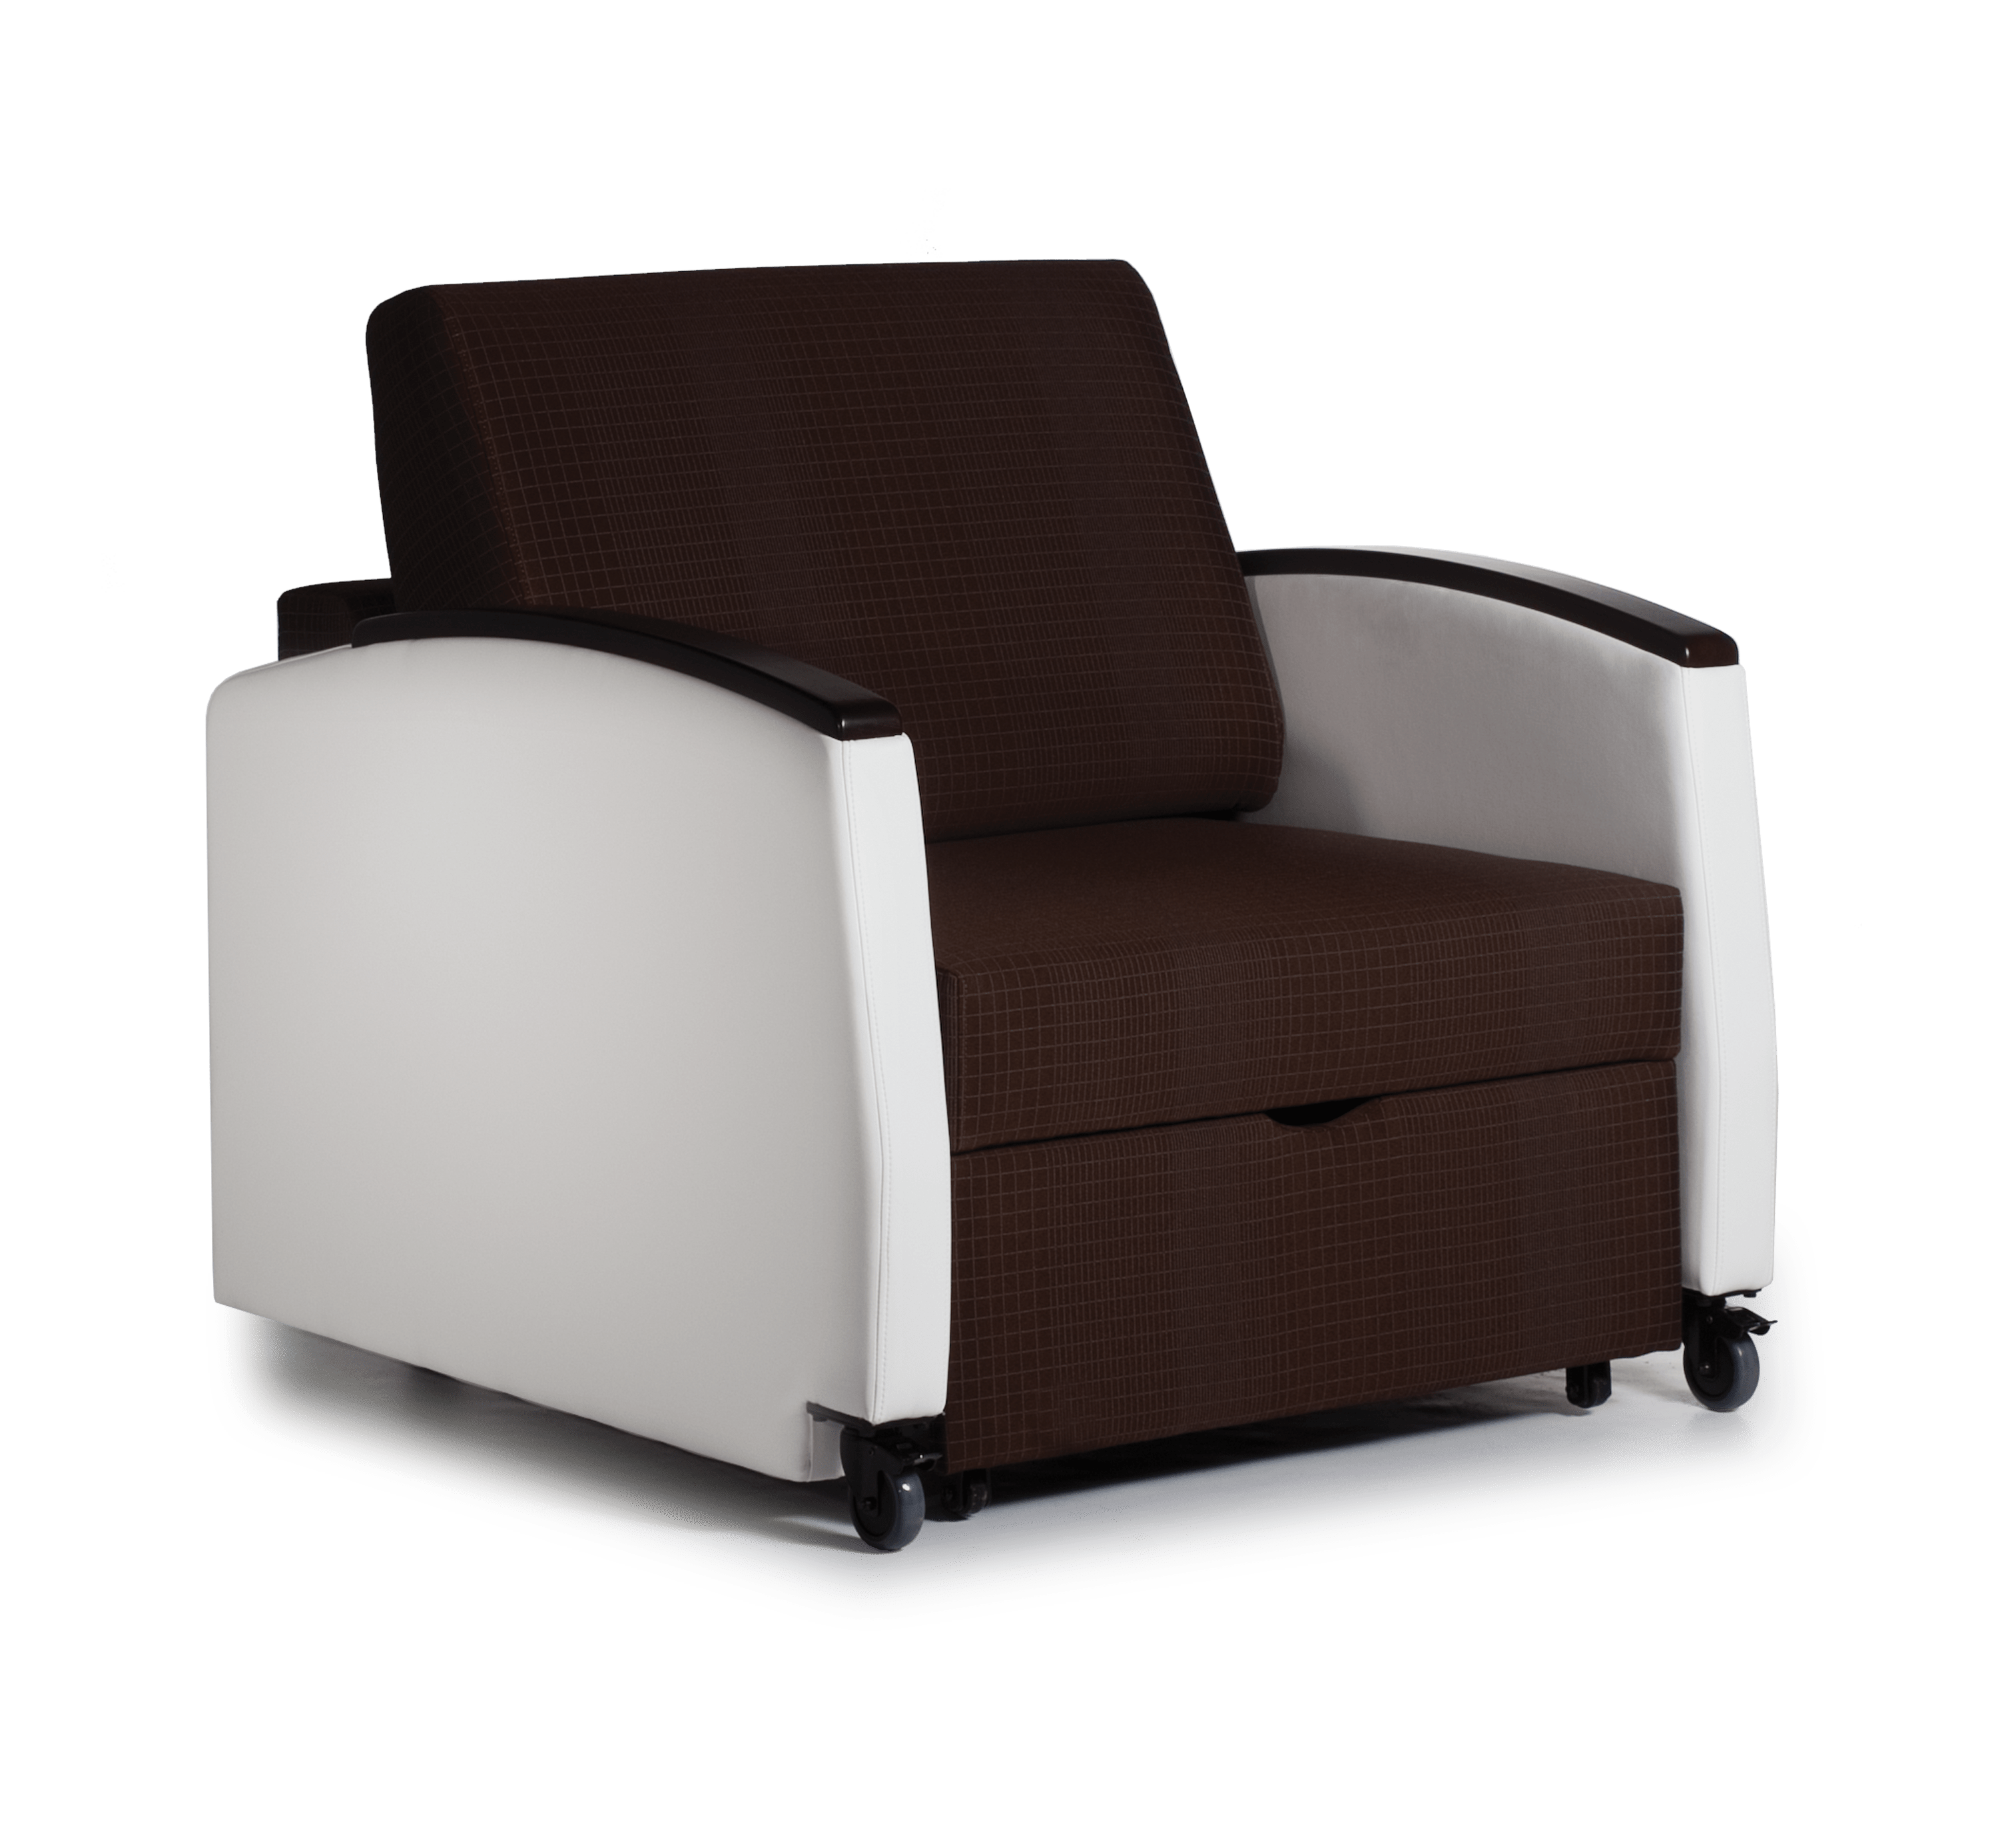 Sleep Chair Recliner Recliners And Sleep Chairs Indoff Interior Solutions